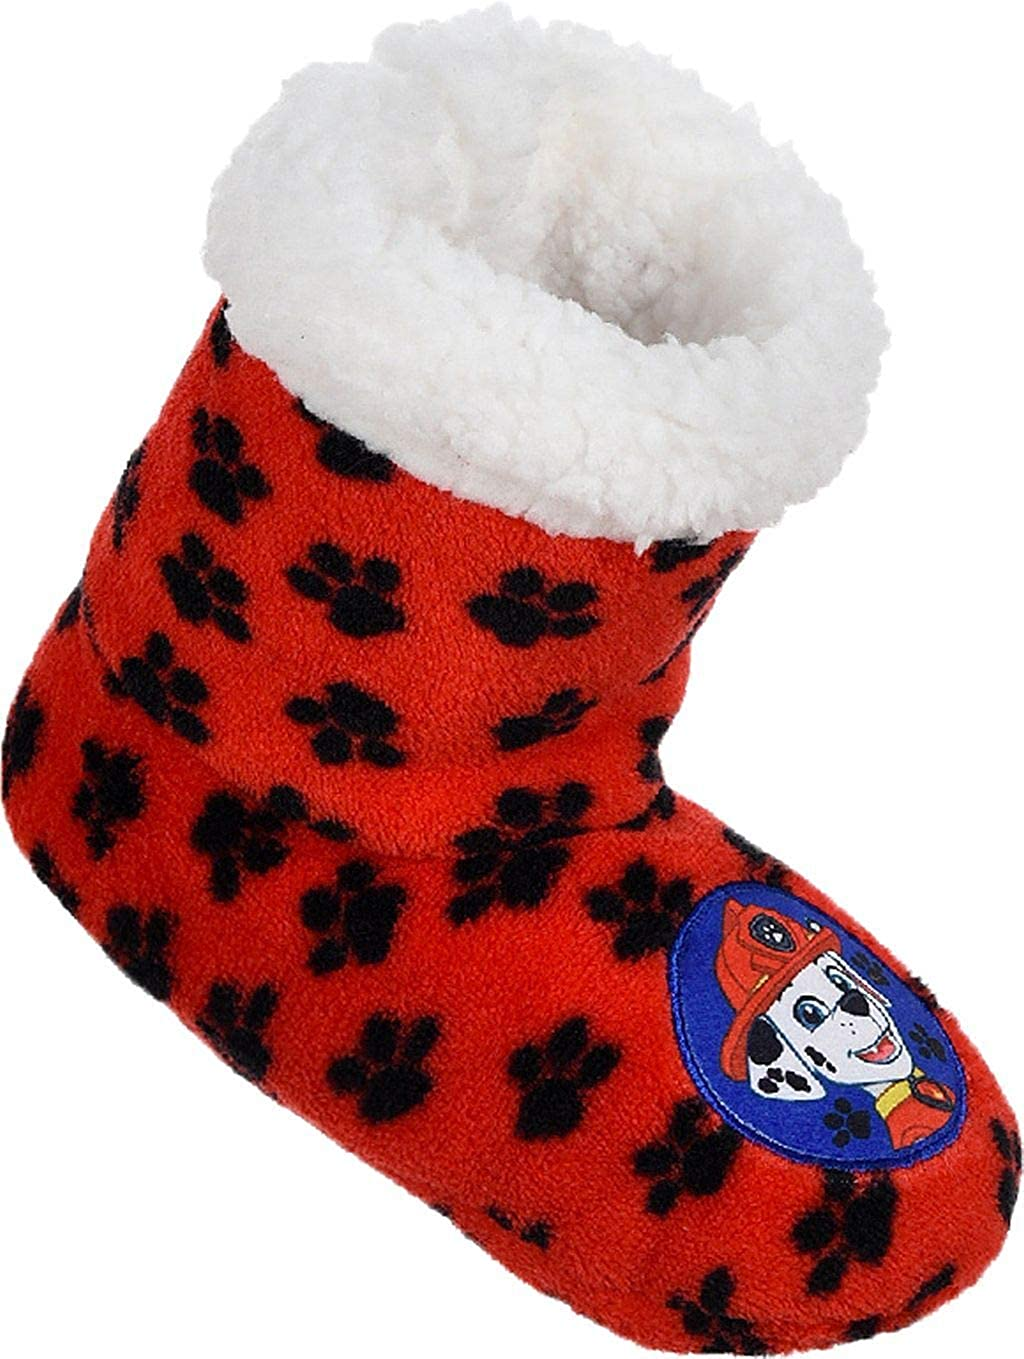 Paw Patrol Boys Chase and Marshall Coral Fleece Boot Style Slipper Set